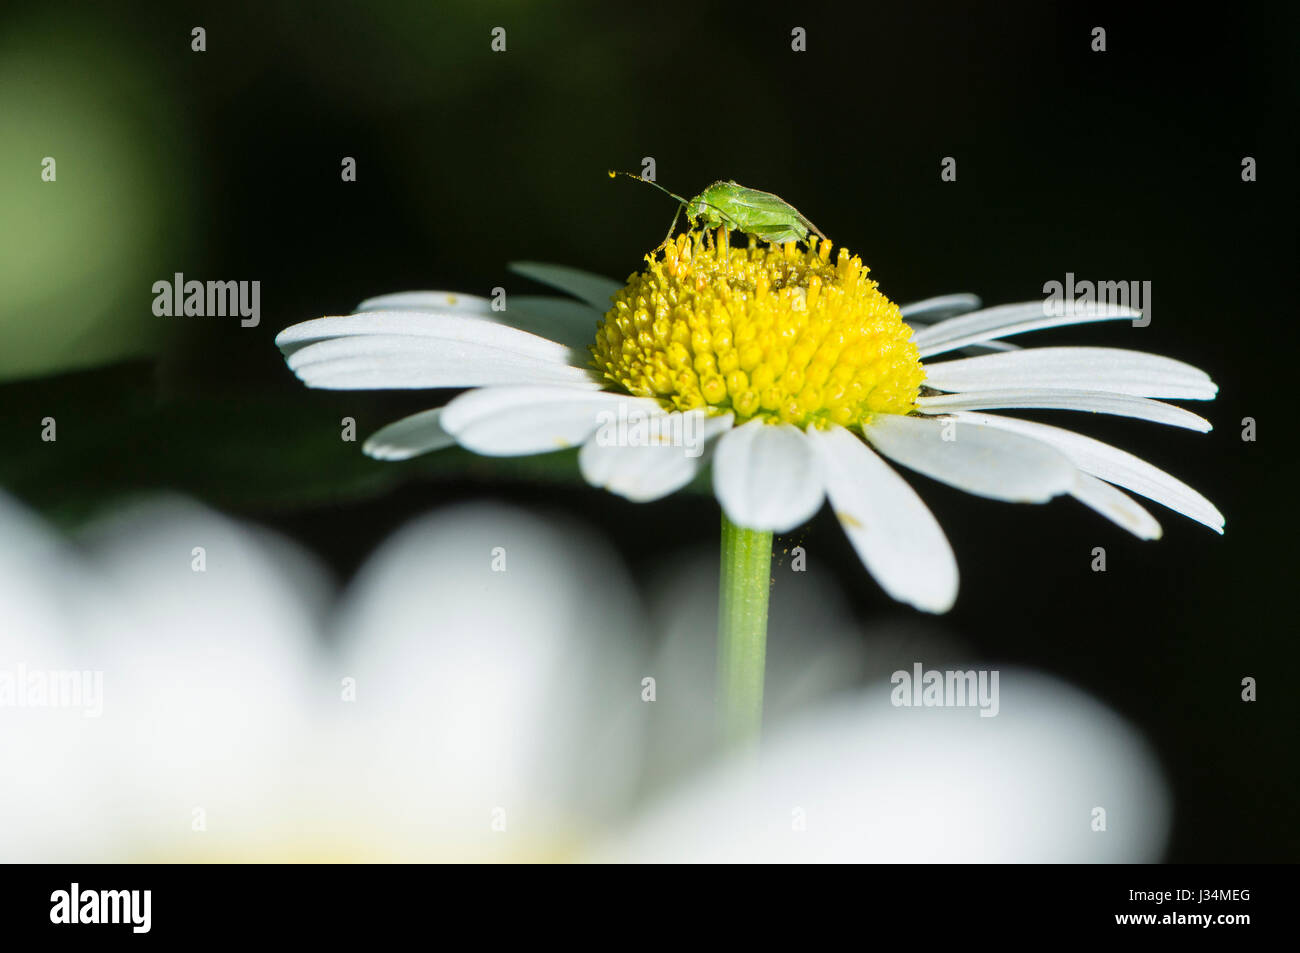 Green Capsid bug feeding on pollen on an oxeye daisy in a garden, Chipping, Lancashire. - Stock Image